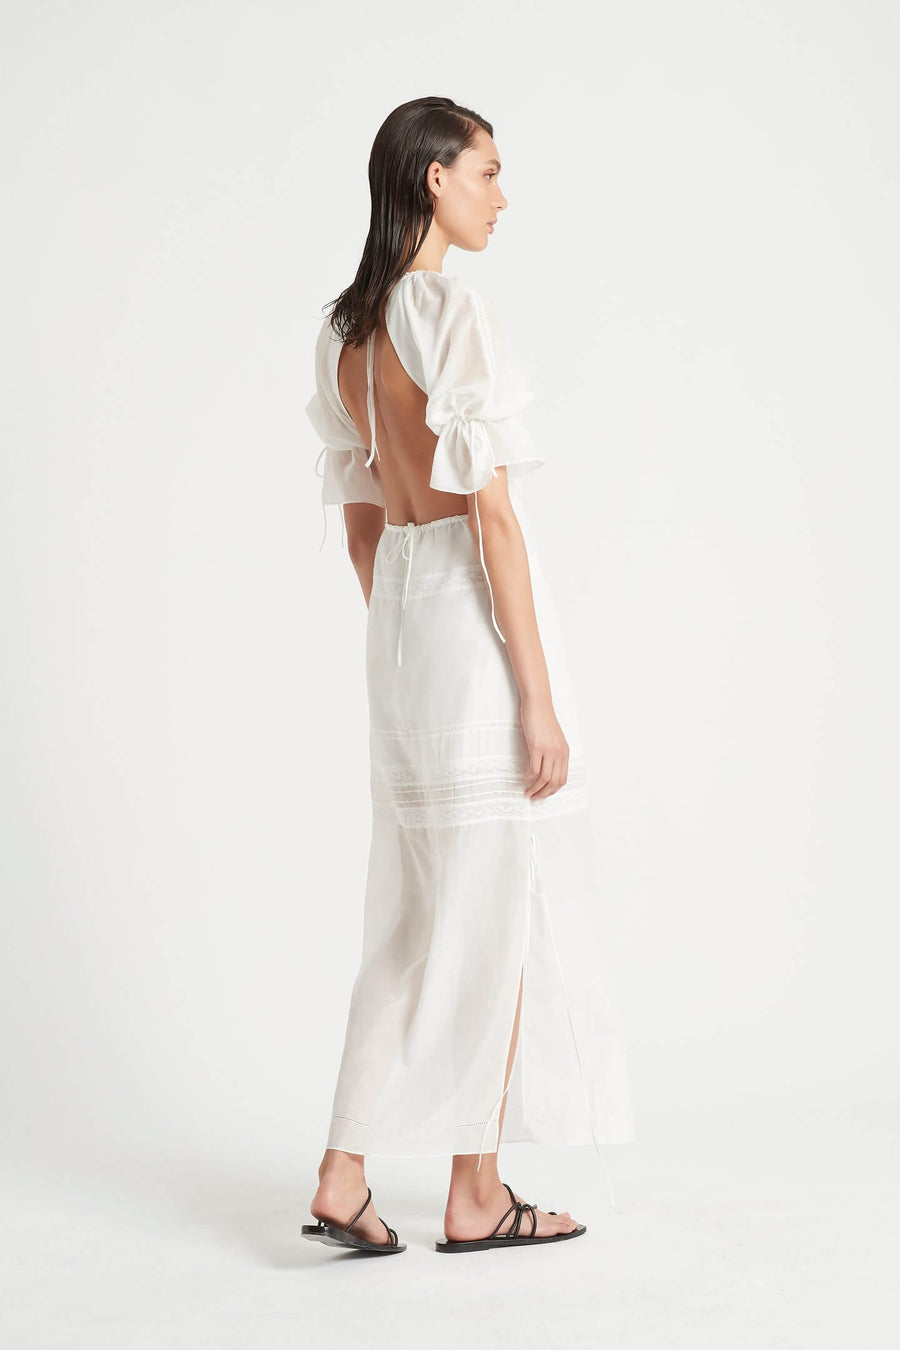 SIR-Maisie-Open-Back-Gown-Womens-Short-Sleeve-Maxi-Dress-White-The-New-Trend